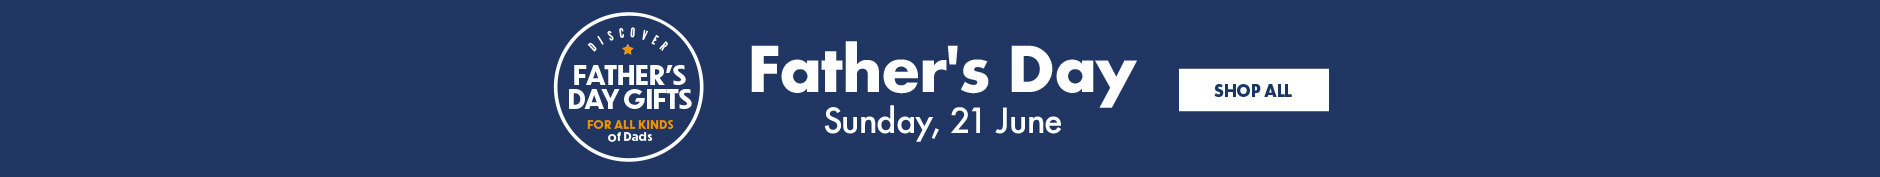 Father's Day Gifts, Sunday 21st June 2020